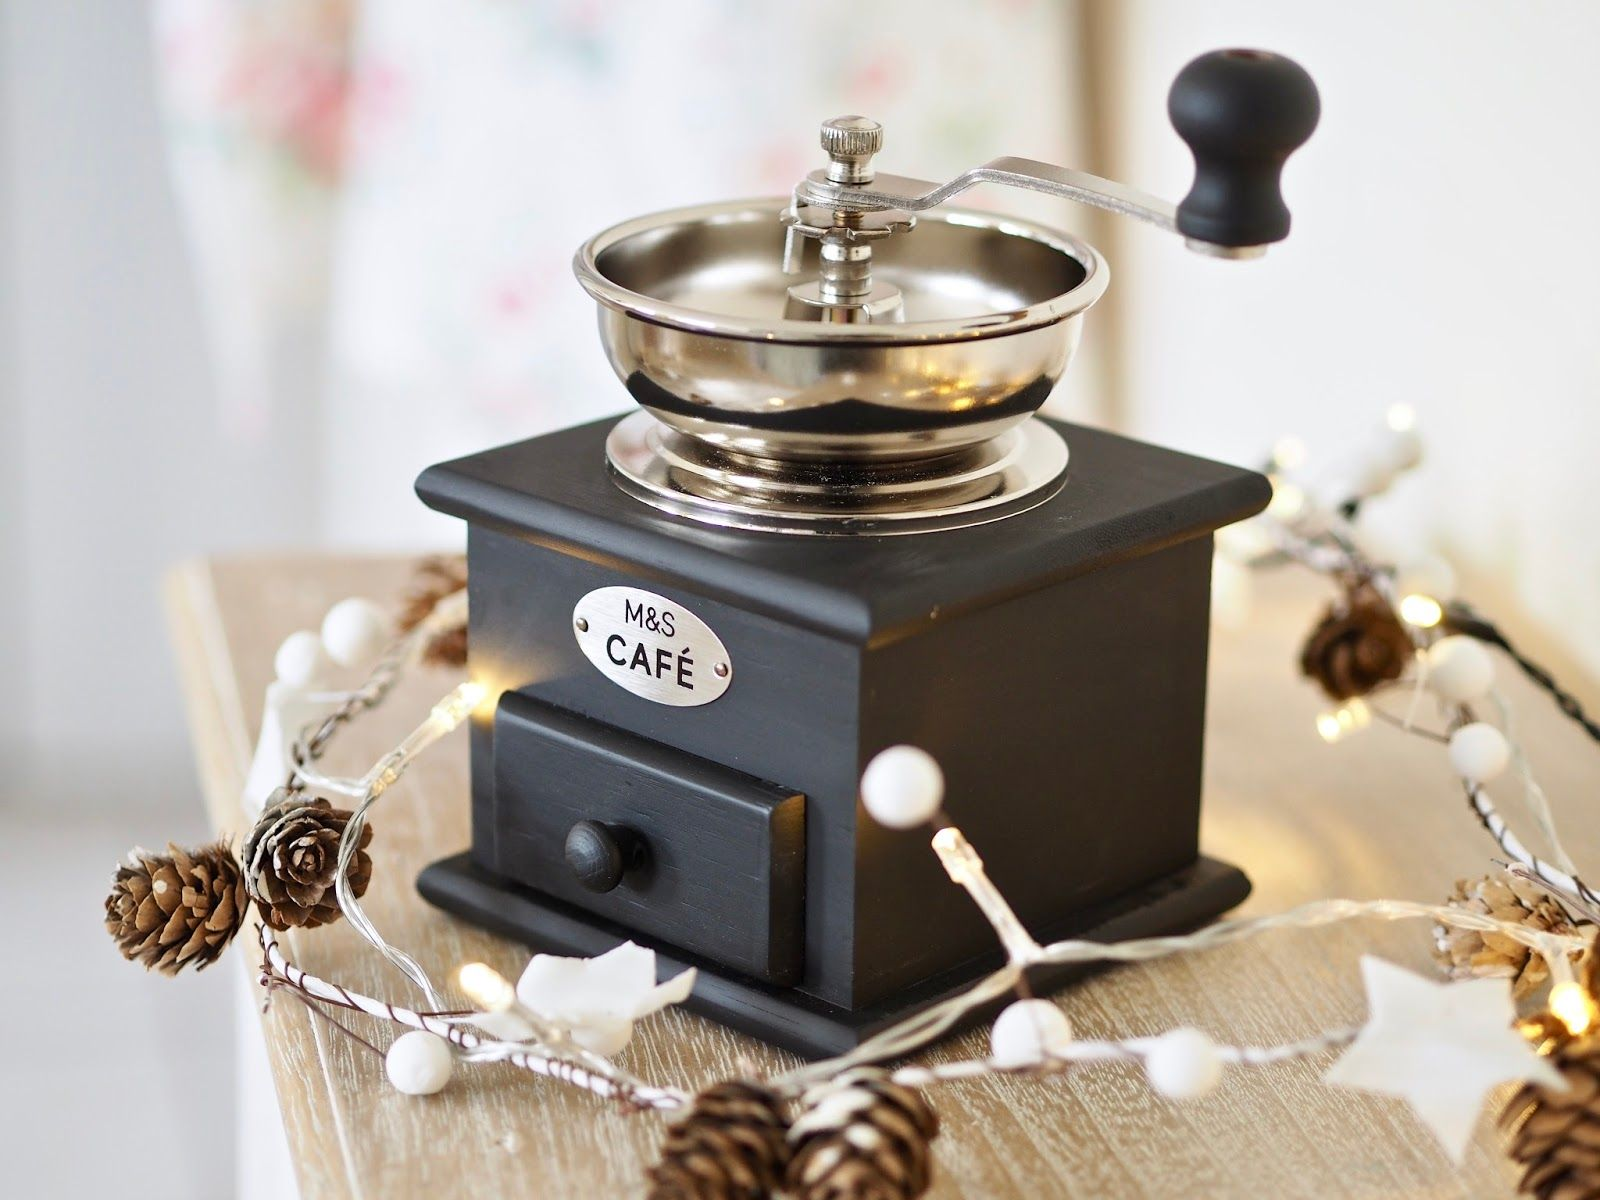 Christmas homeware gifts under €50 with Marks & Spencer